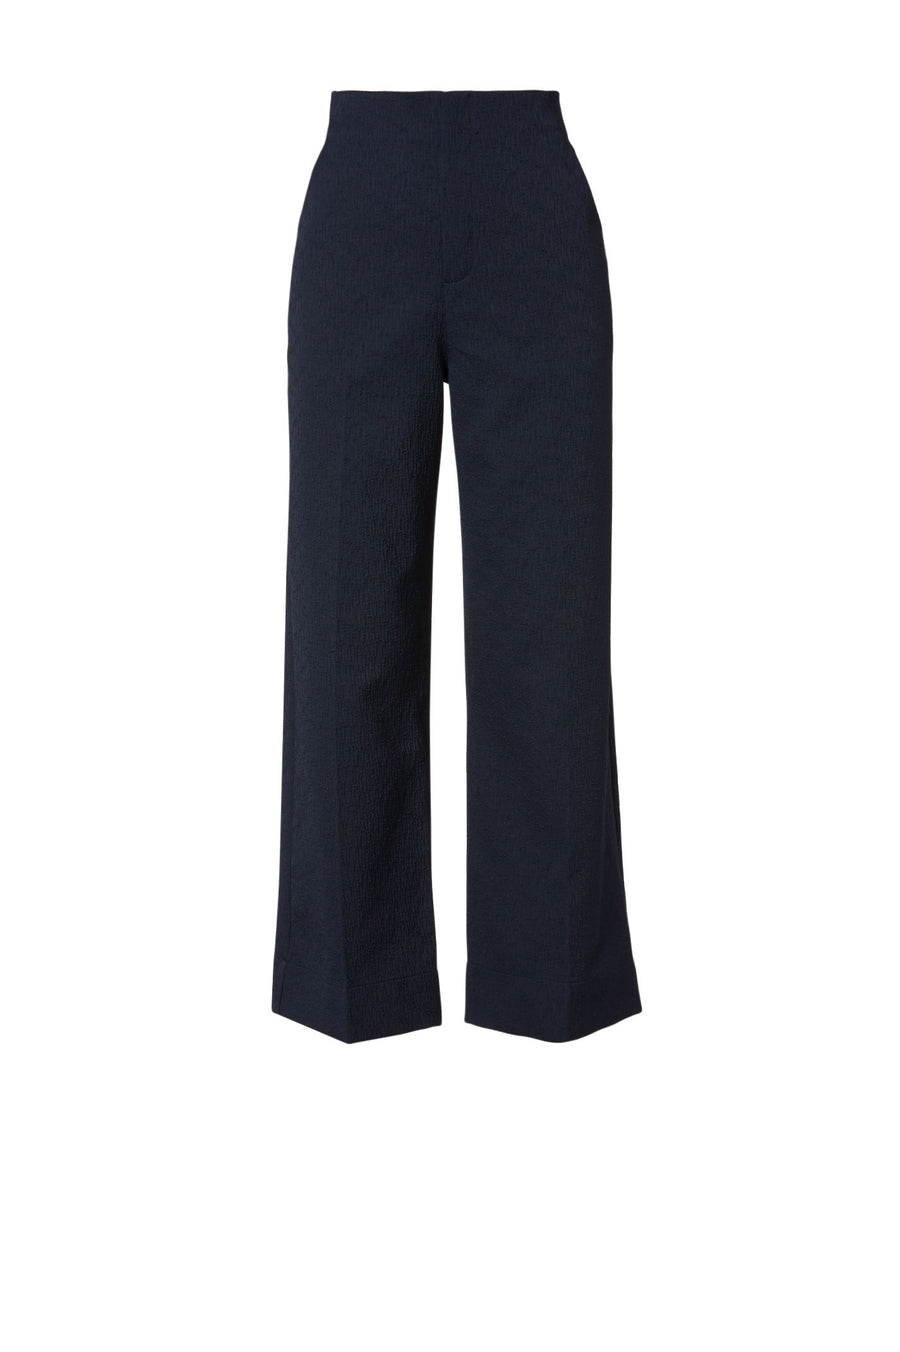 TEXTURED CROPPED TROUSER NAVY, Relaxed fit, High rise